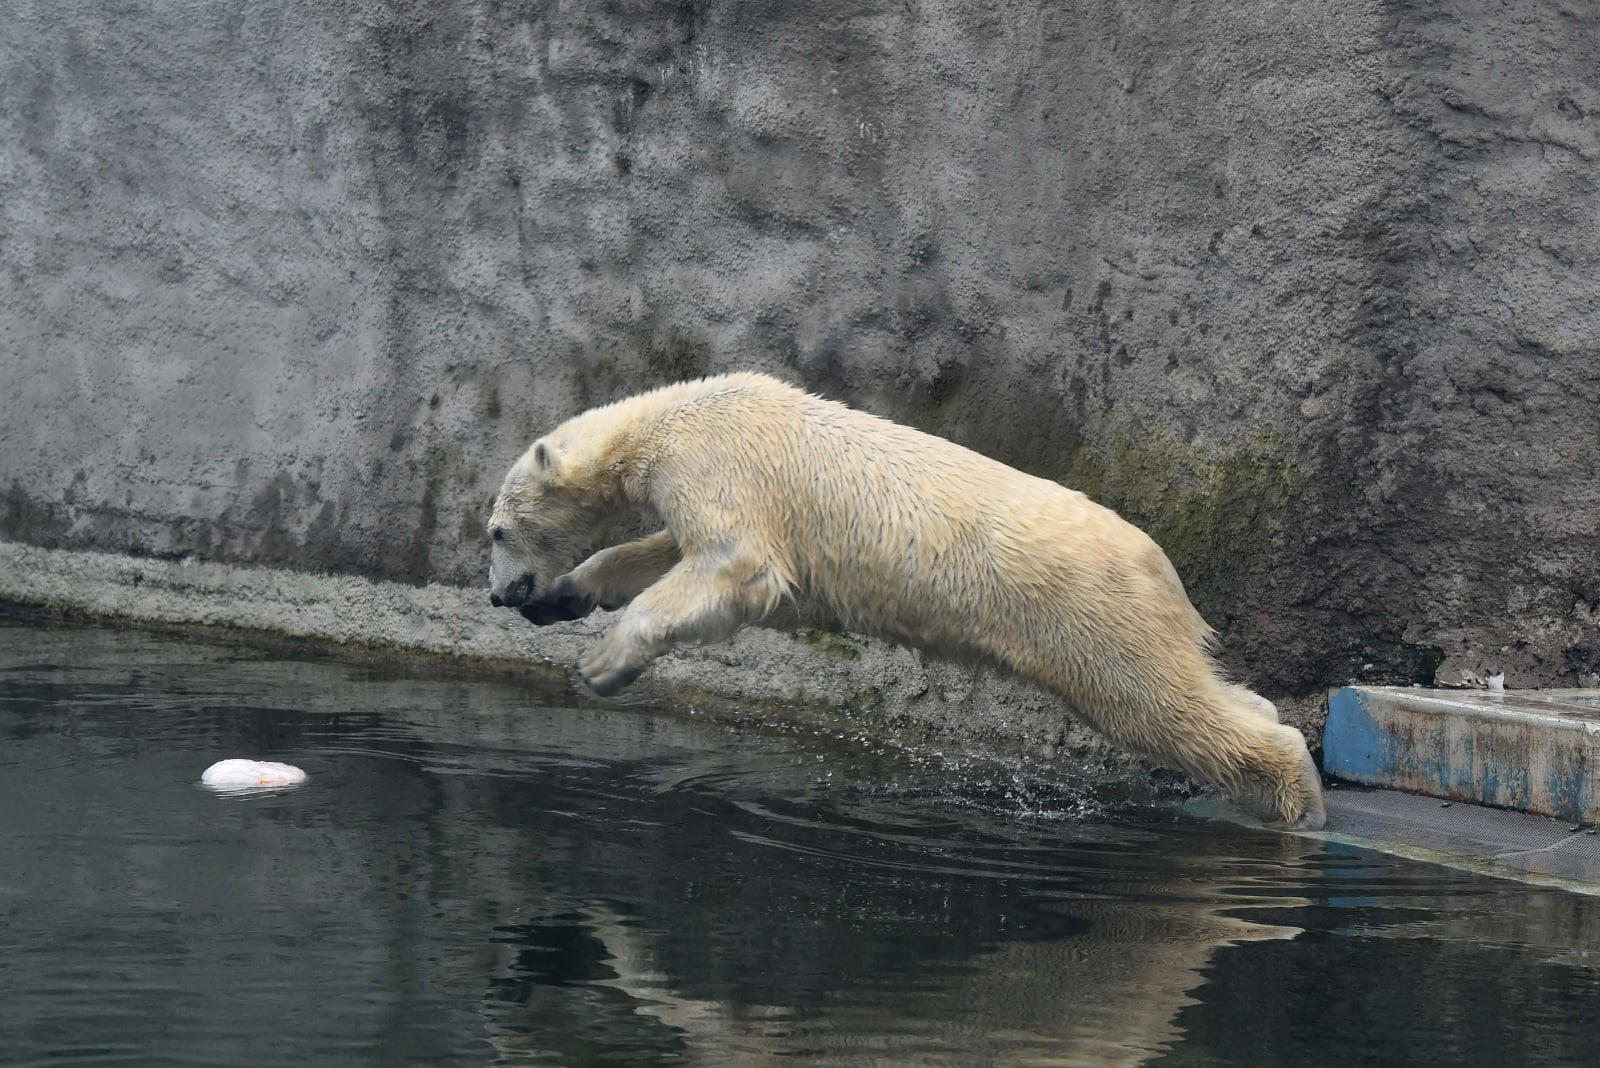 epa06492040 A polar bear jumps into a pond to catch an icy doughnut made of fish, vegetables and fruits it received on the occasion of the Carnival of Animals in the Budapest Zoo in Budapest, Hungary, 02 February 2018. The three-day carnival consists of various programs for children and families in the zoo.  EPA/Noemi Bruzak HUNGARY OUT Dostawca: PAP/EPA.